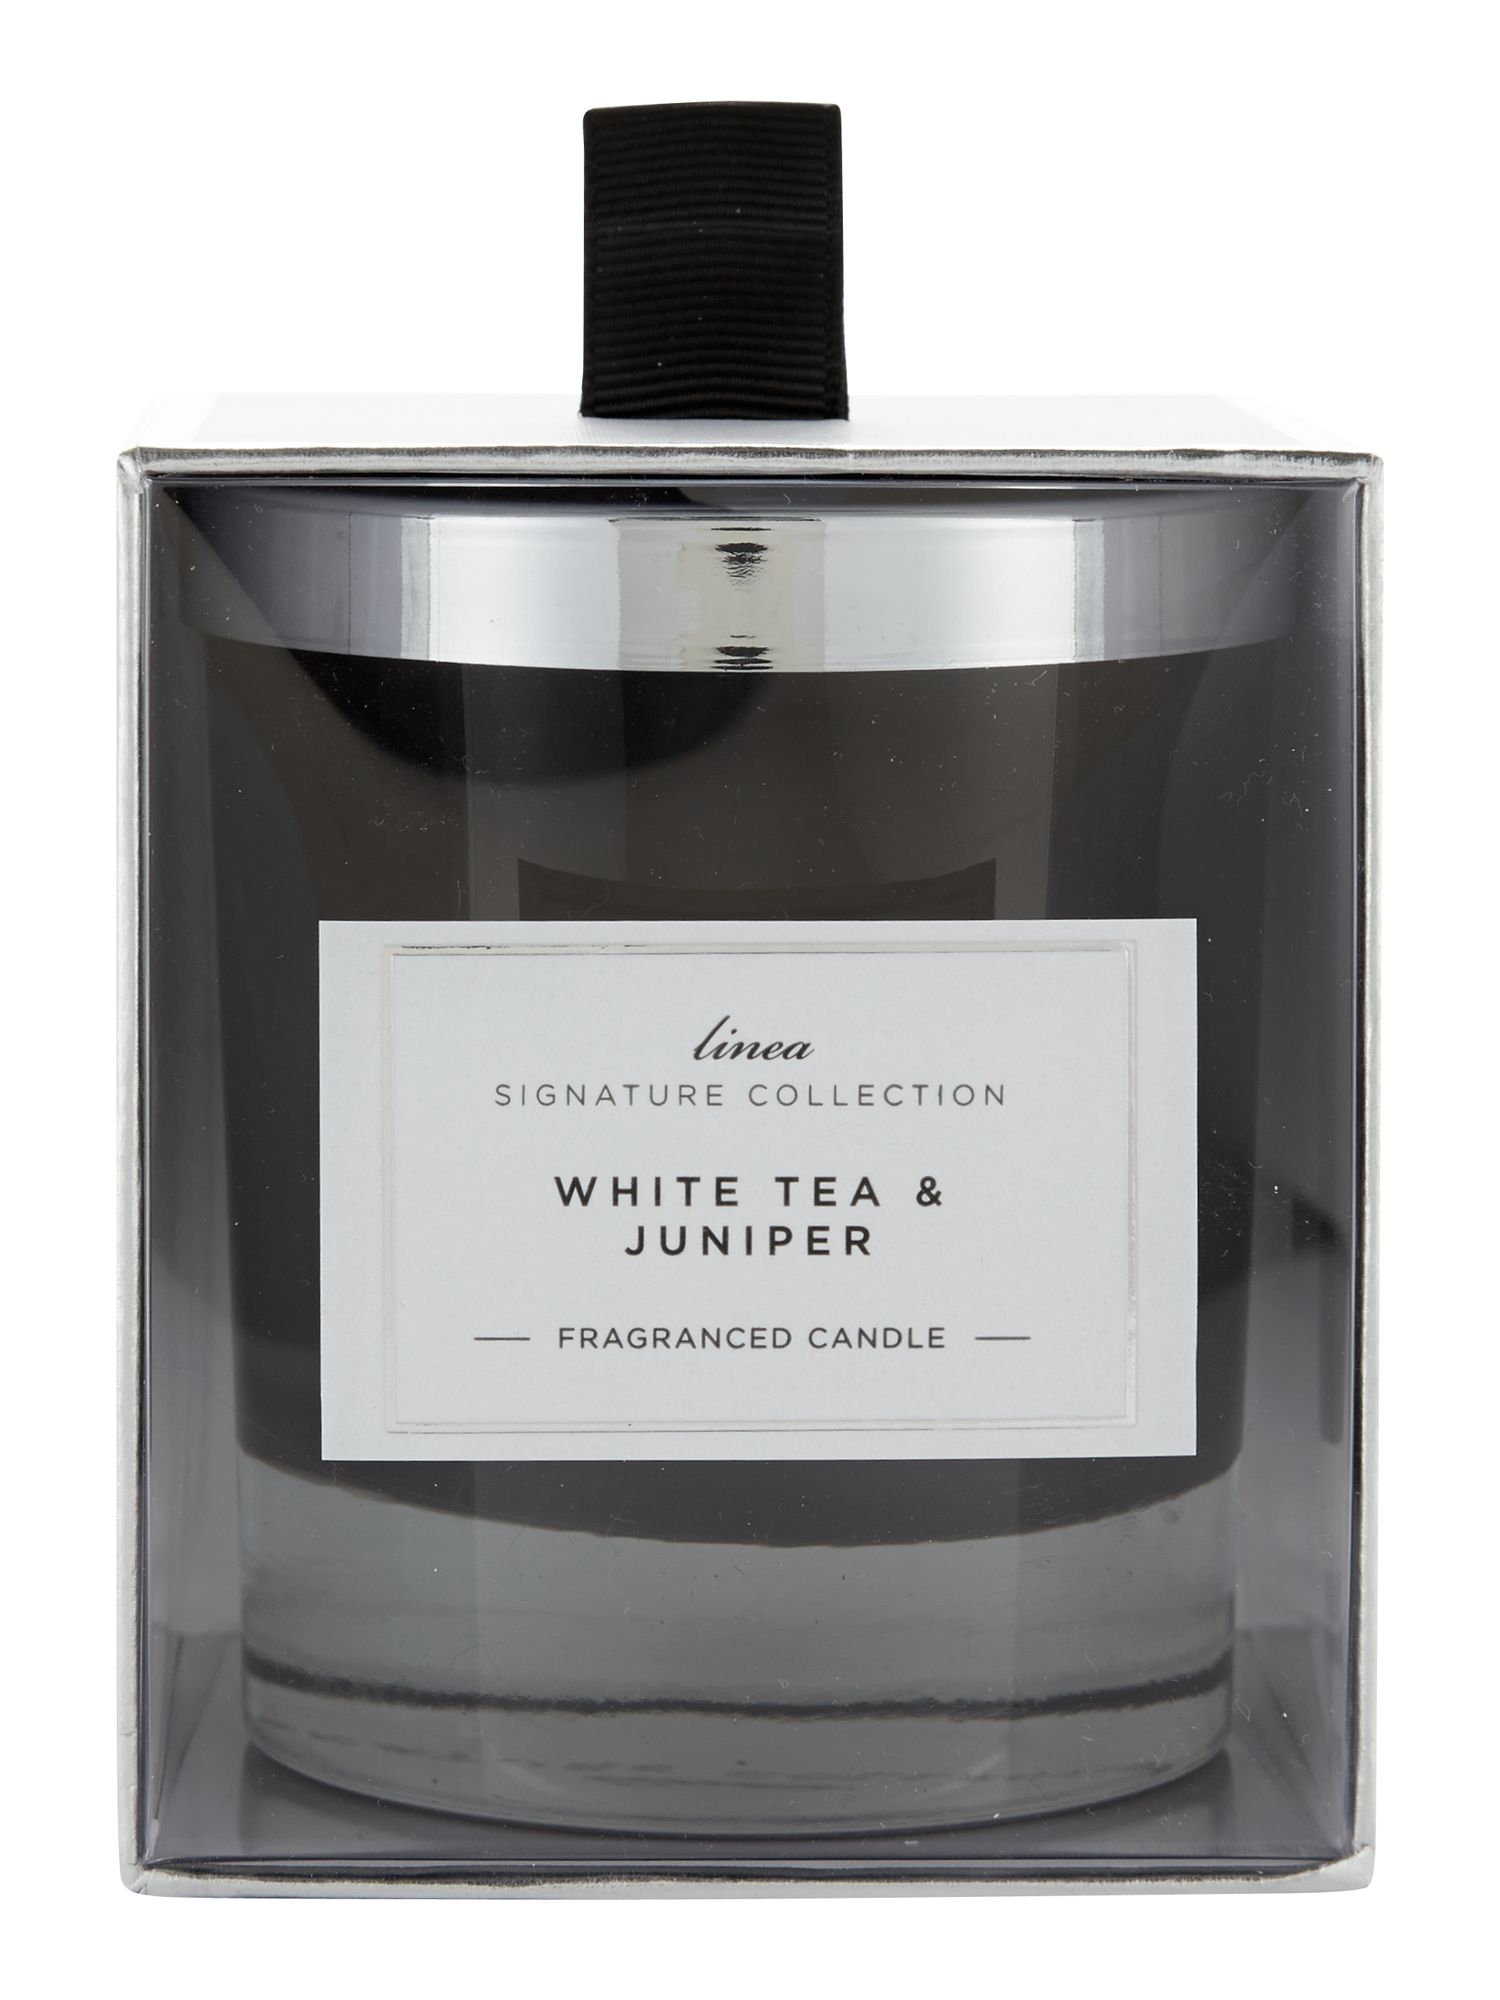 White tea & juniper single candle